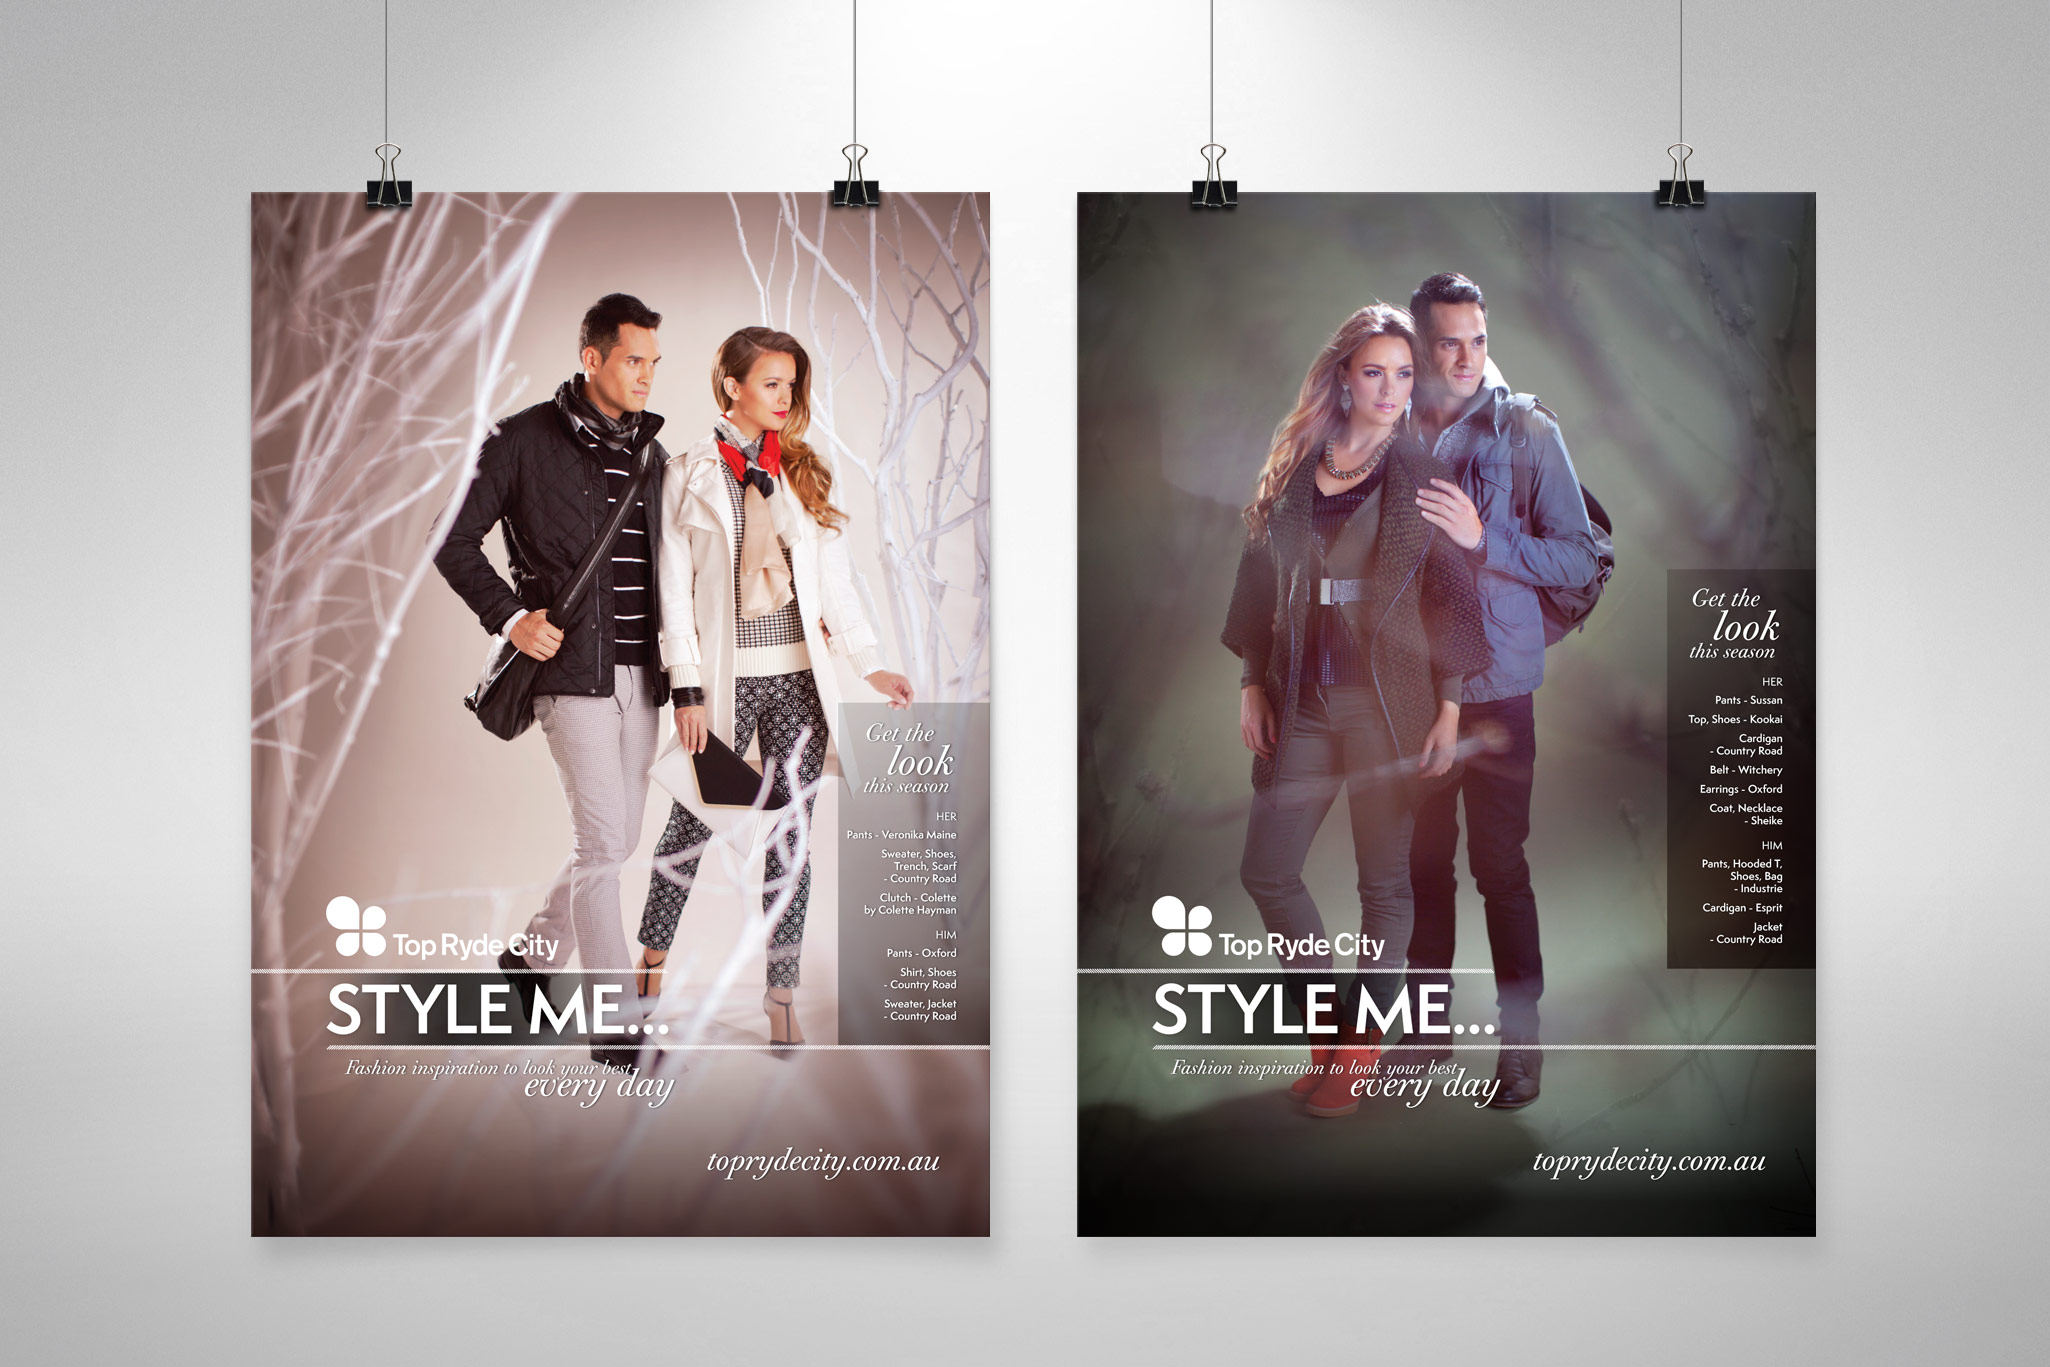 Top_Ryde_City-Winter_fashion_campaign_posters_2012-2013.jpg